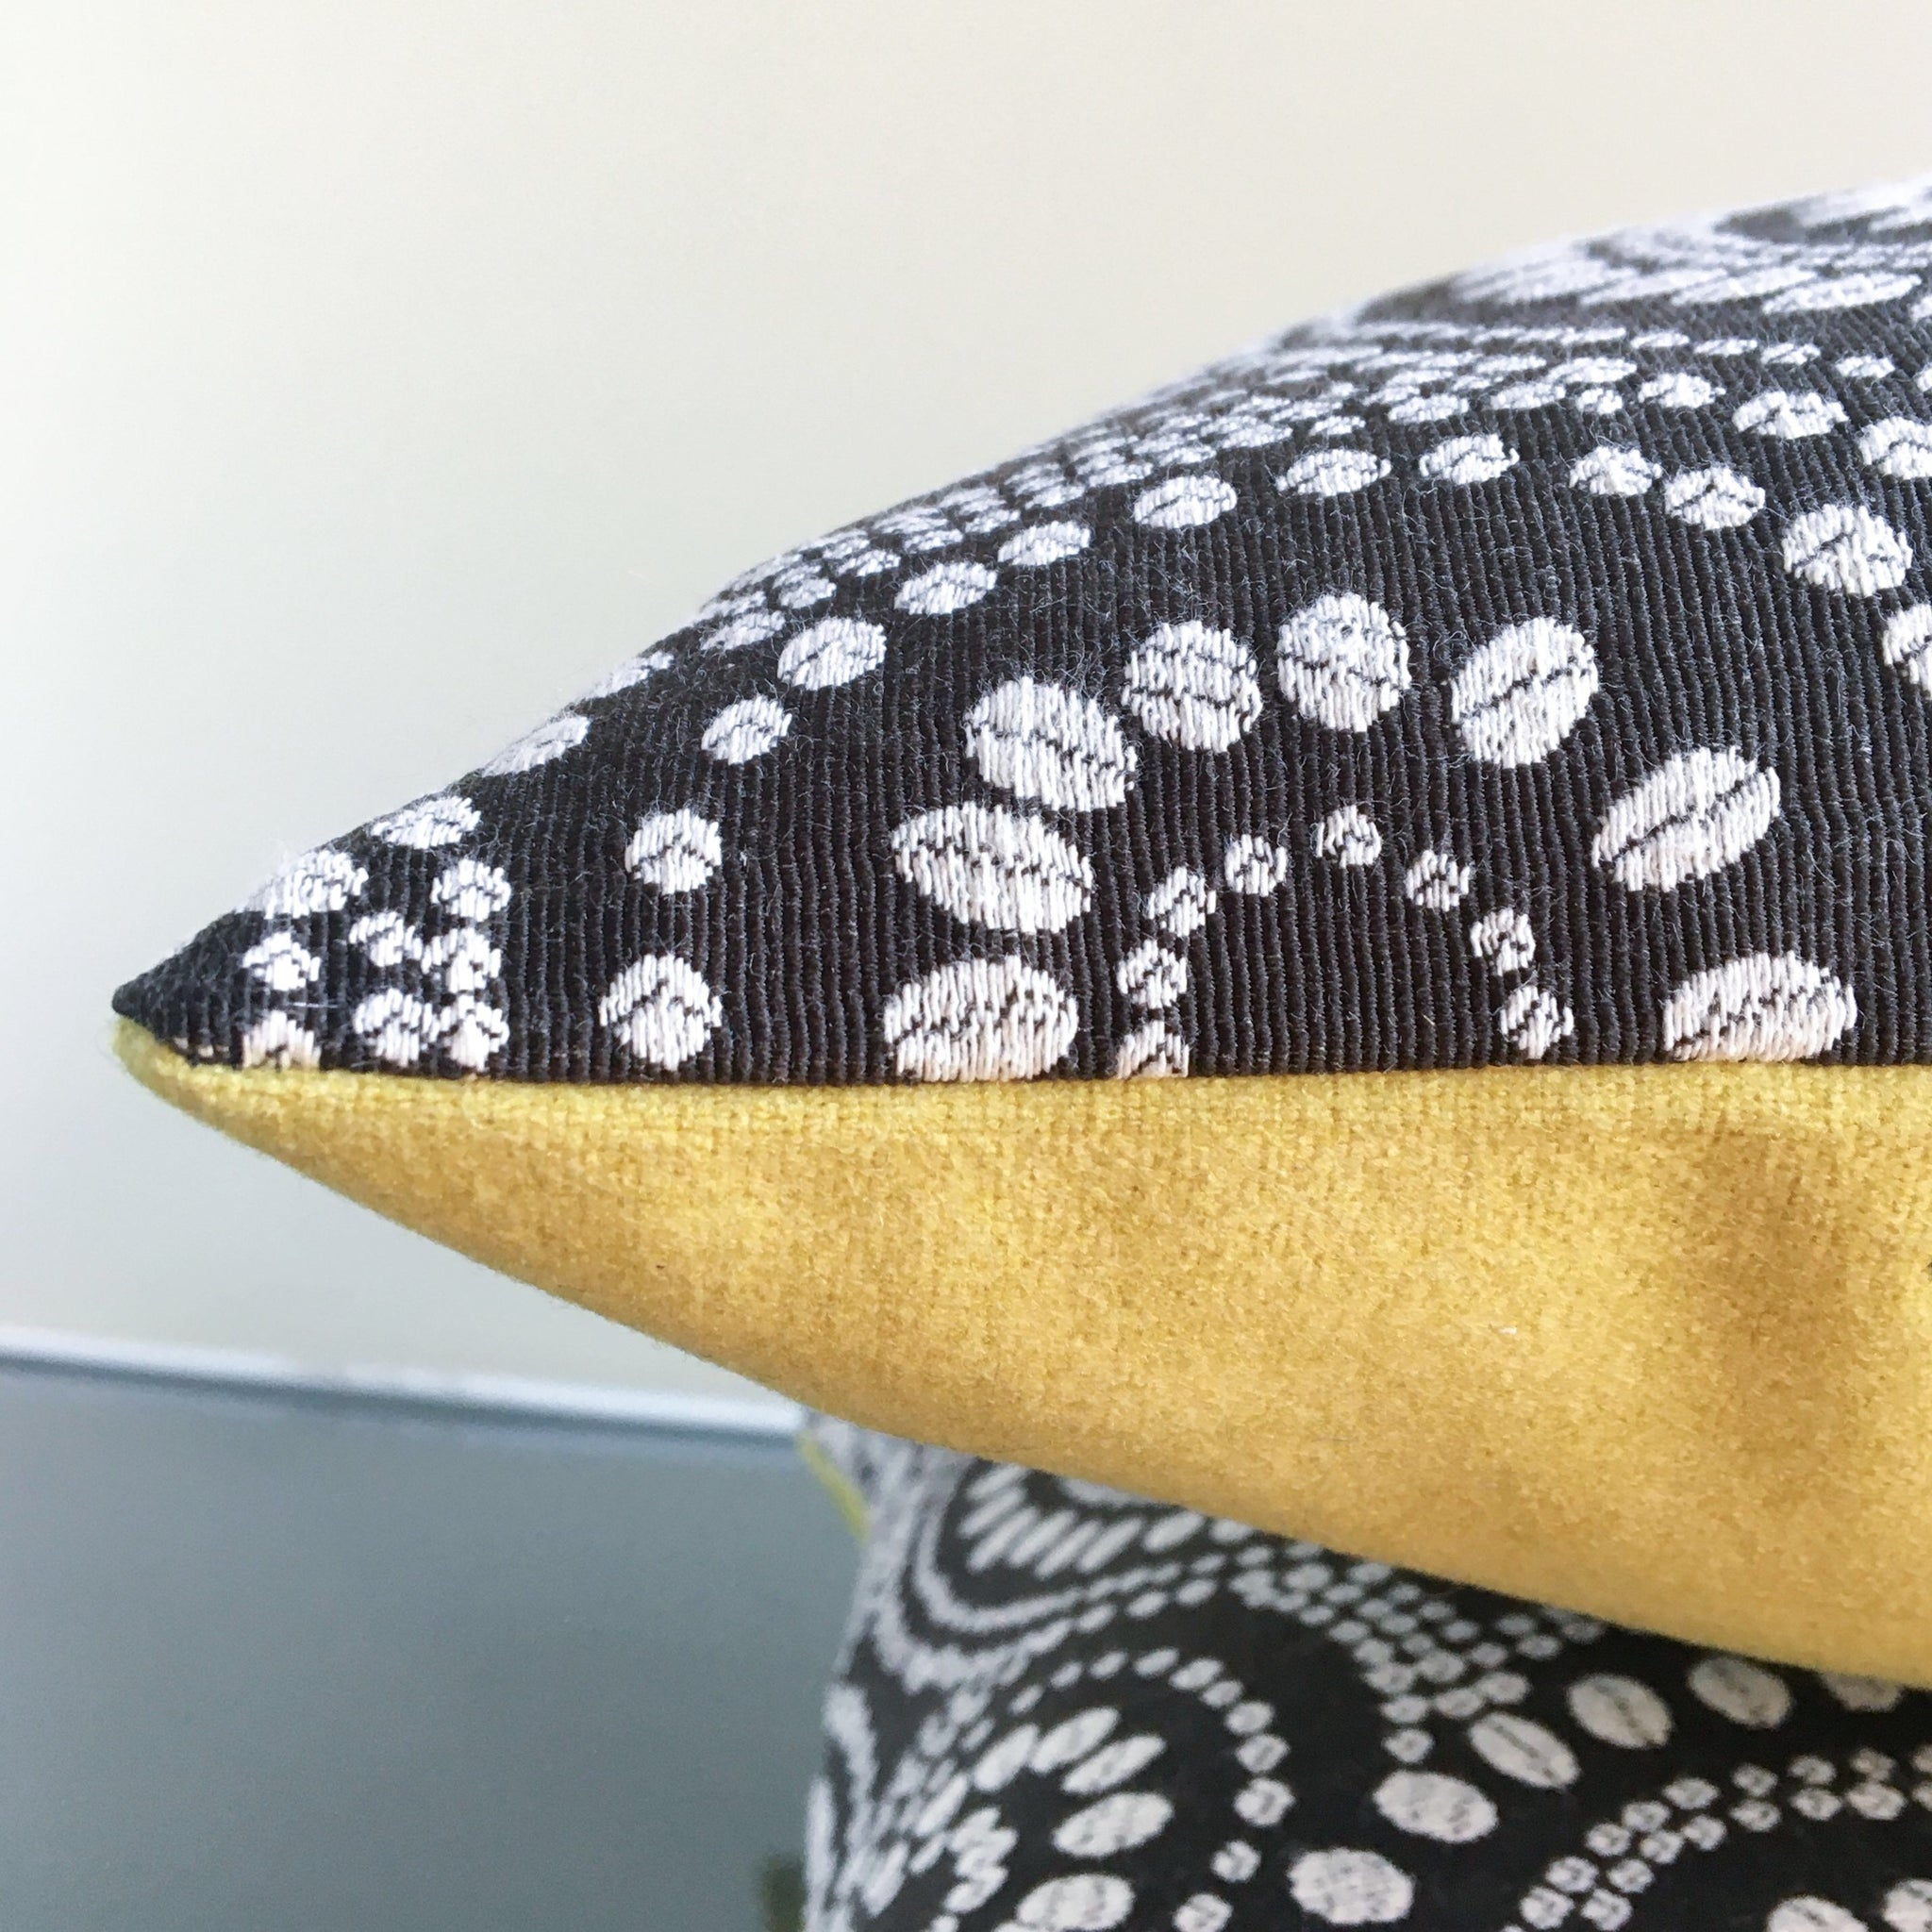 18x18 Black, White, Bright Yellow Pillow Covers | Polka Dot Pillows | Contemporary Colorful Pillows